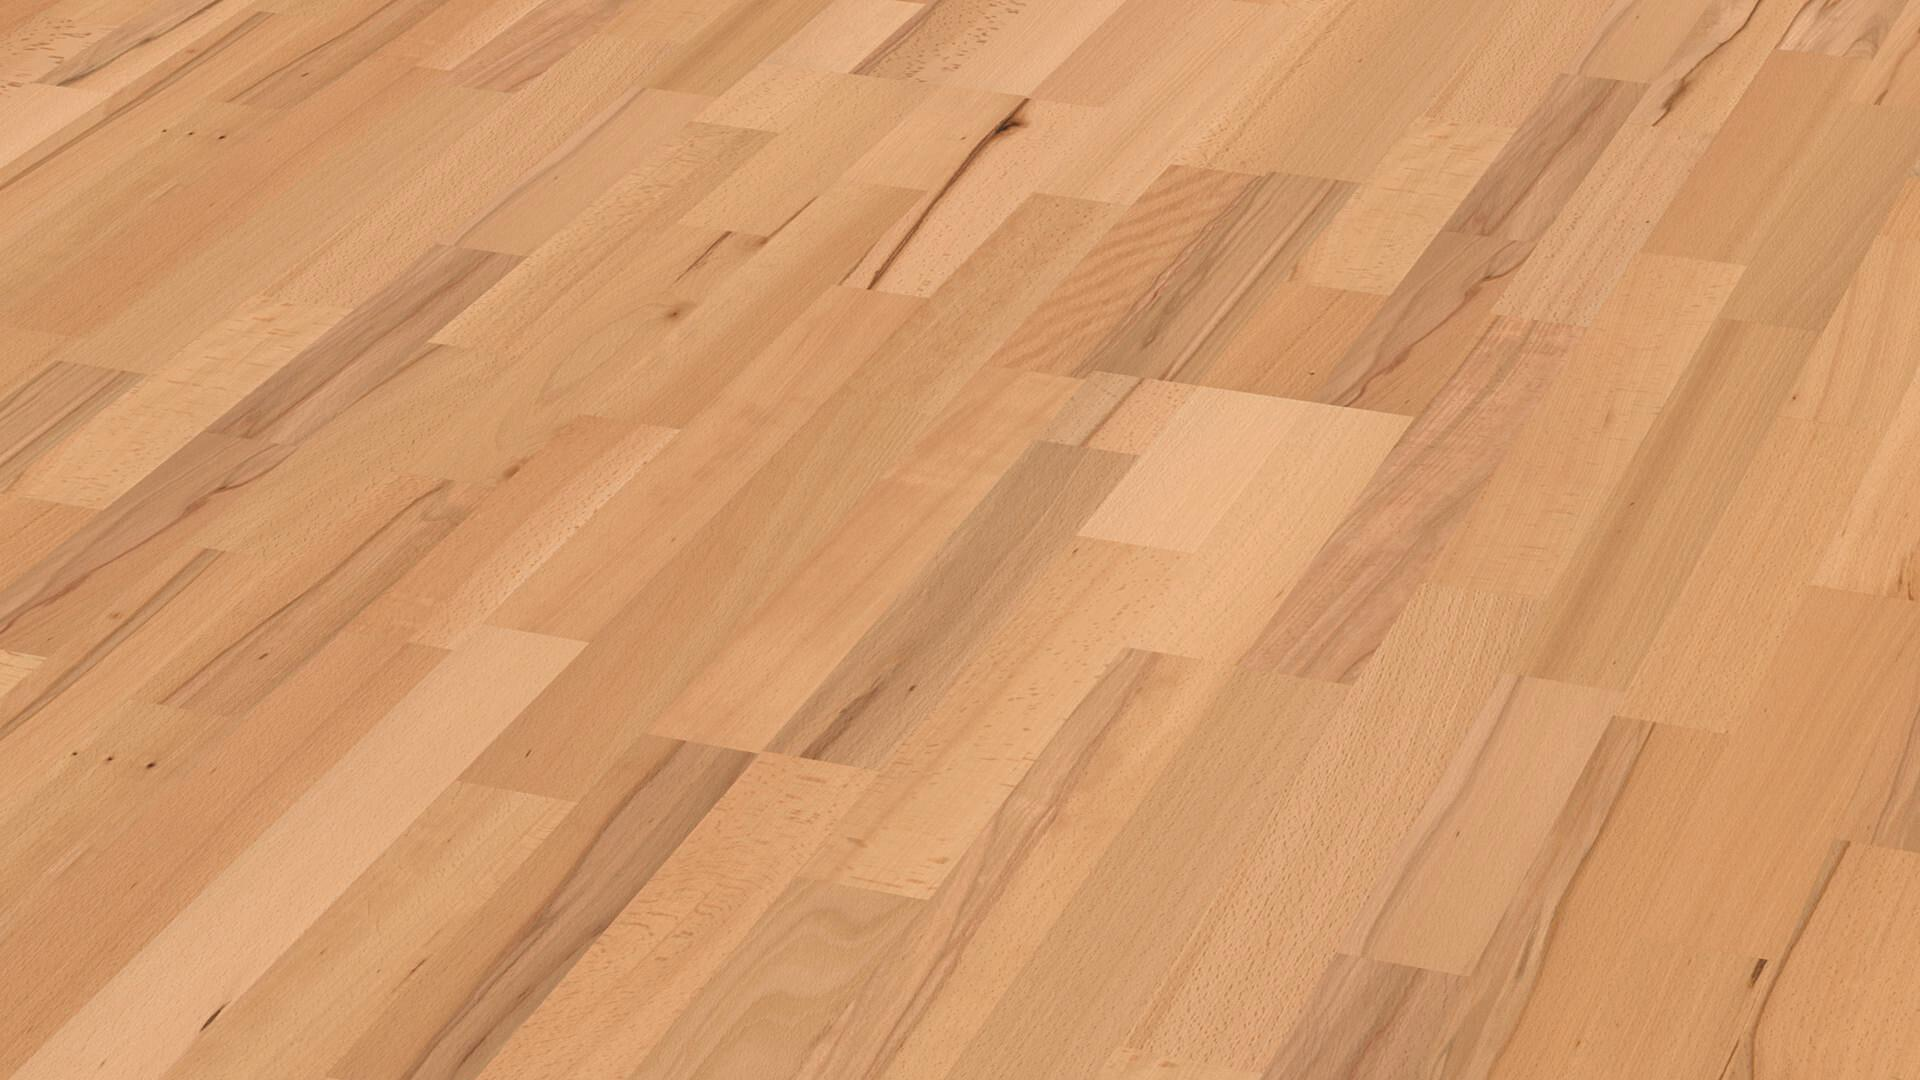 Parquet flooring MeisterParquet. longlife PC 200 Steamed beech lively 921